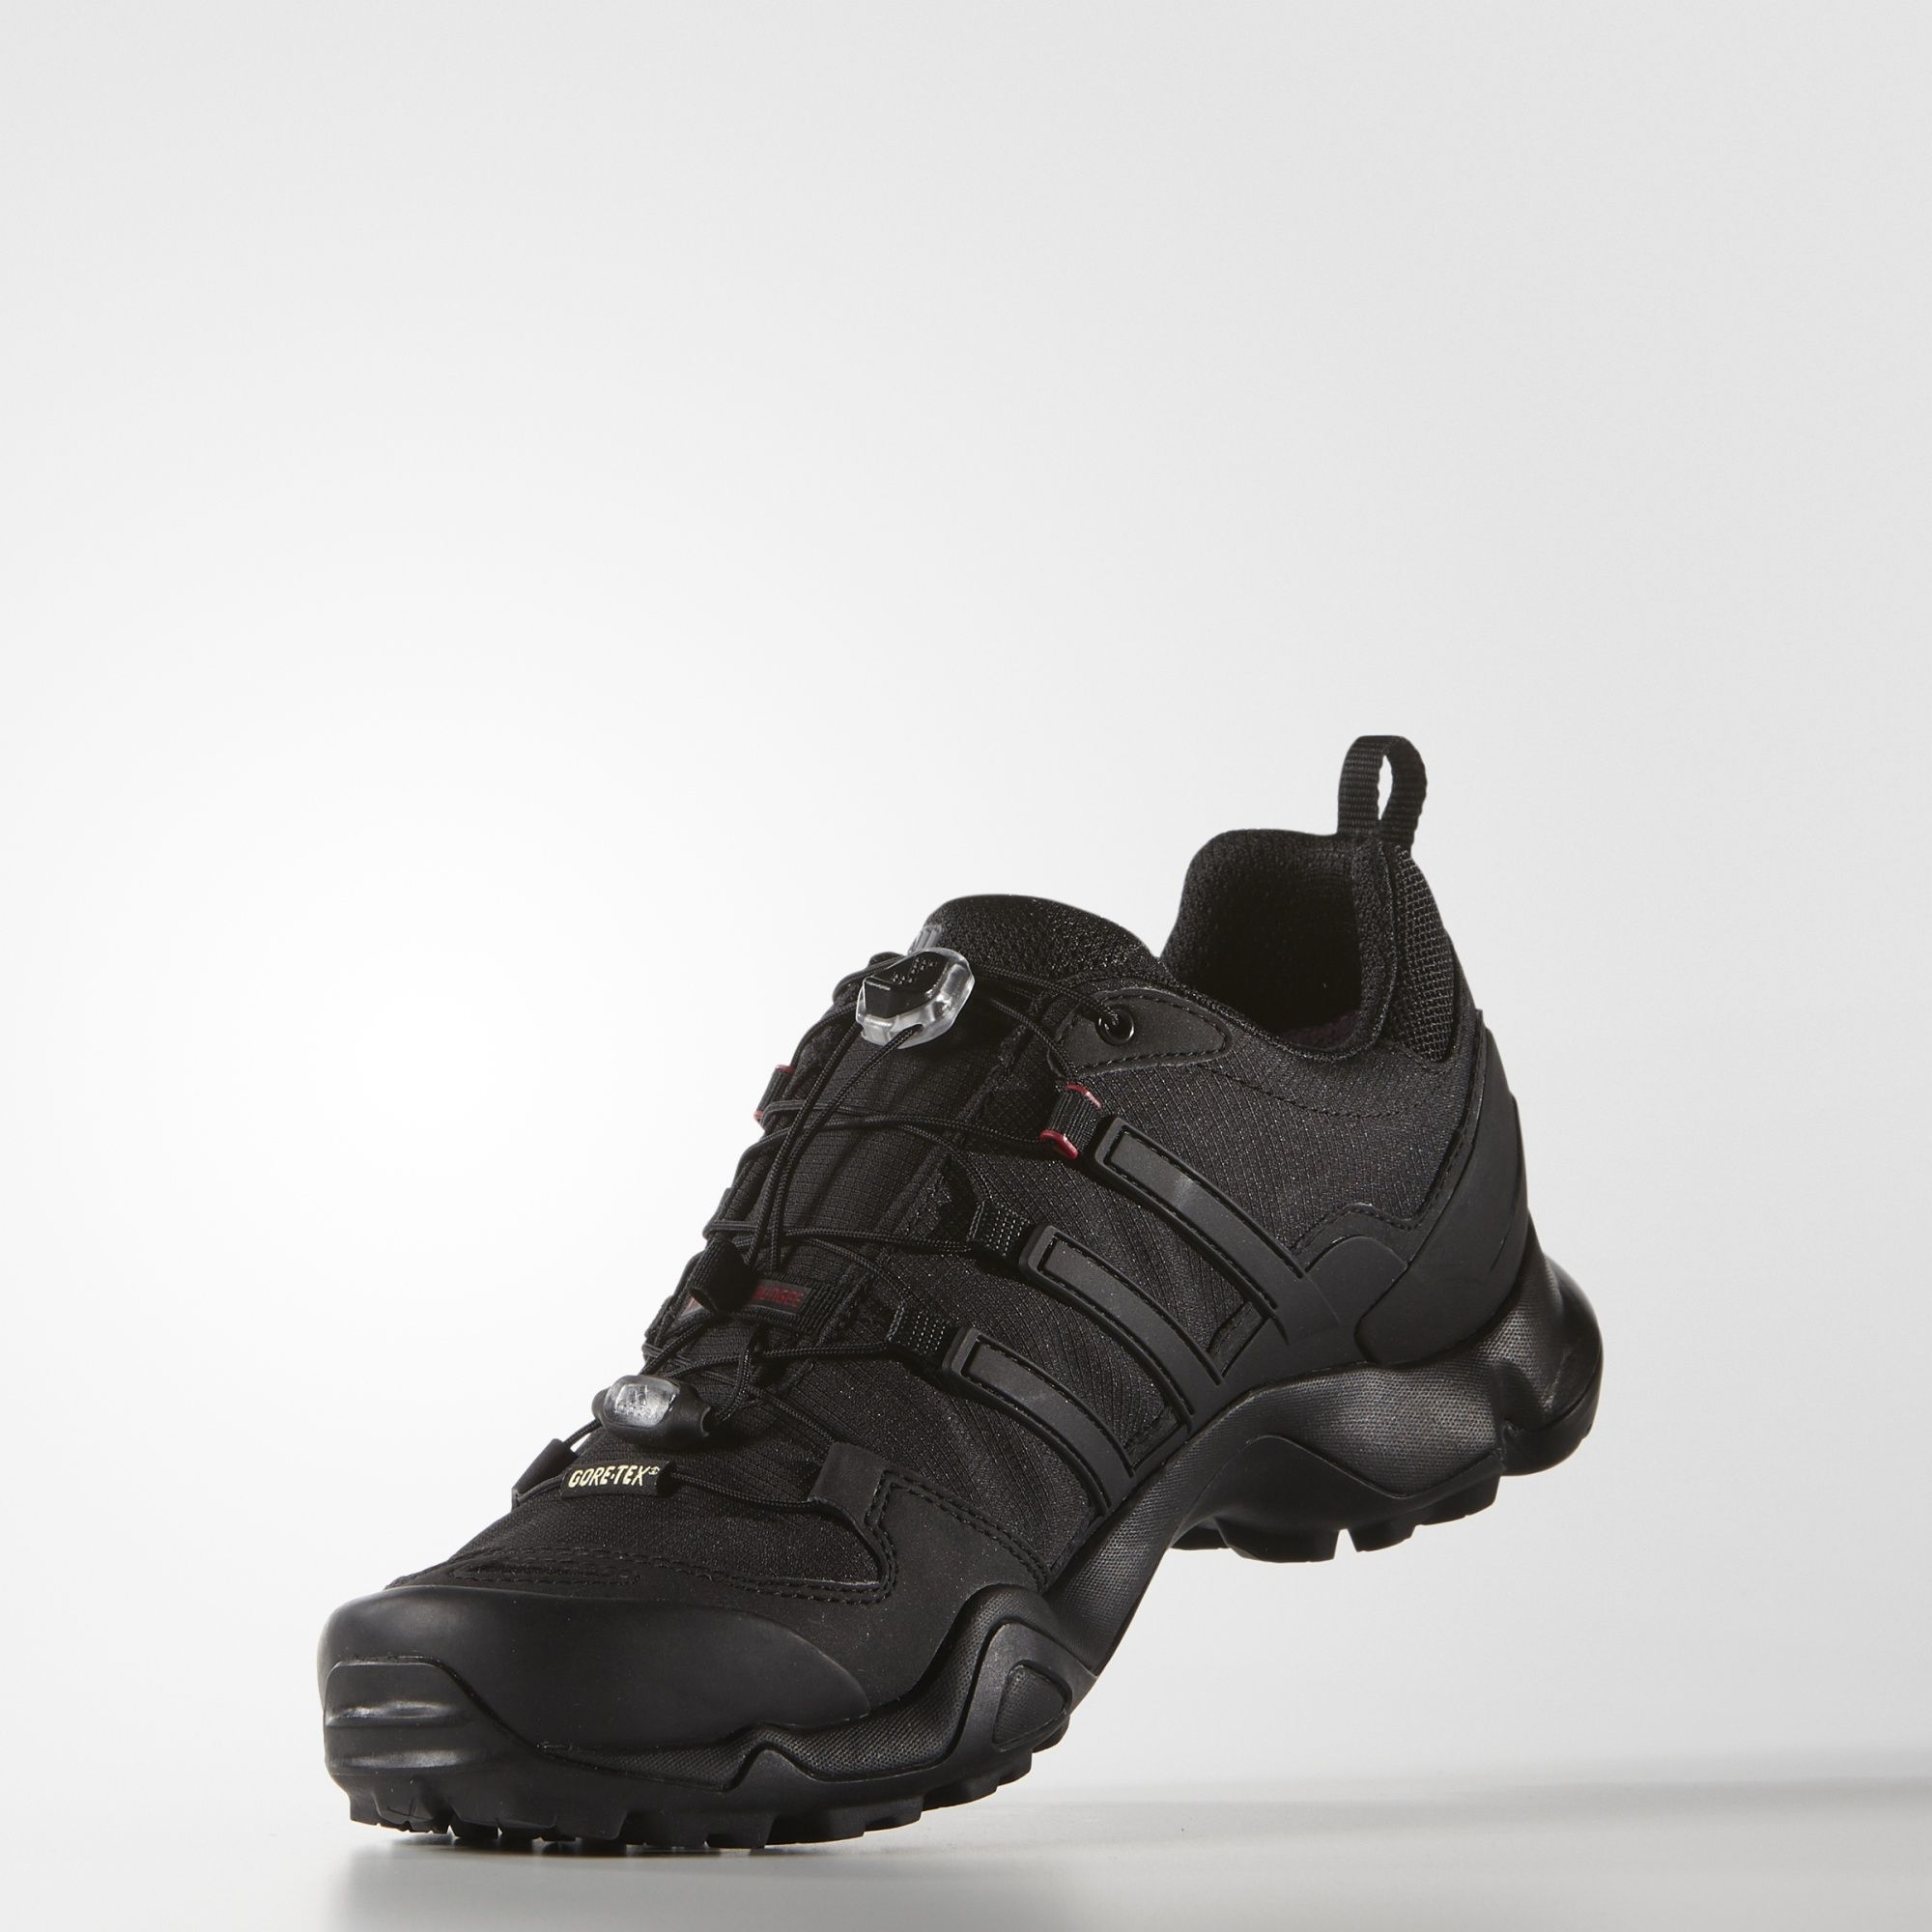 adidas Terrex Swift R GTX Shoes | Schuhe